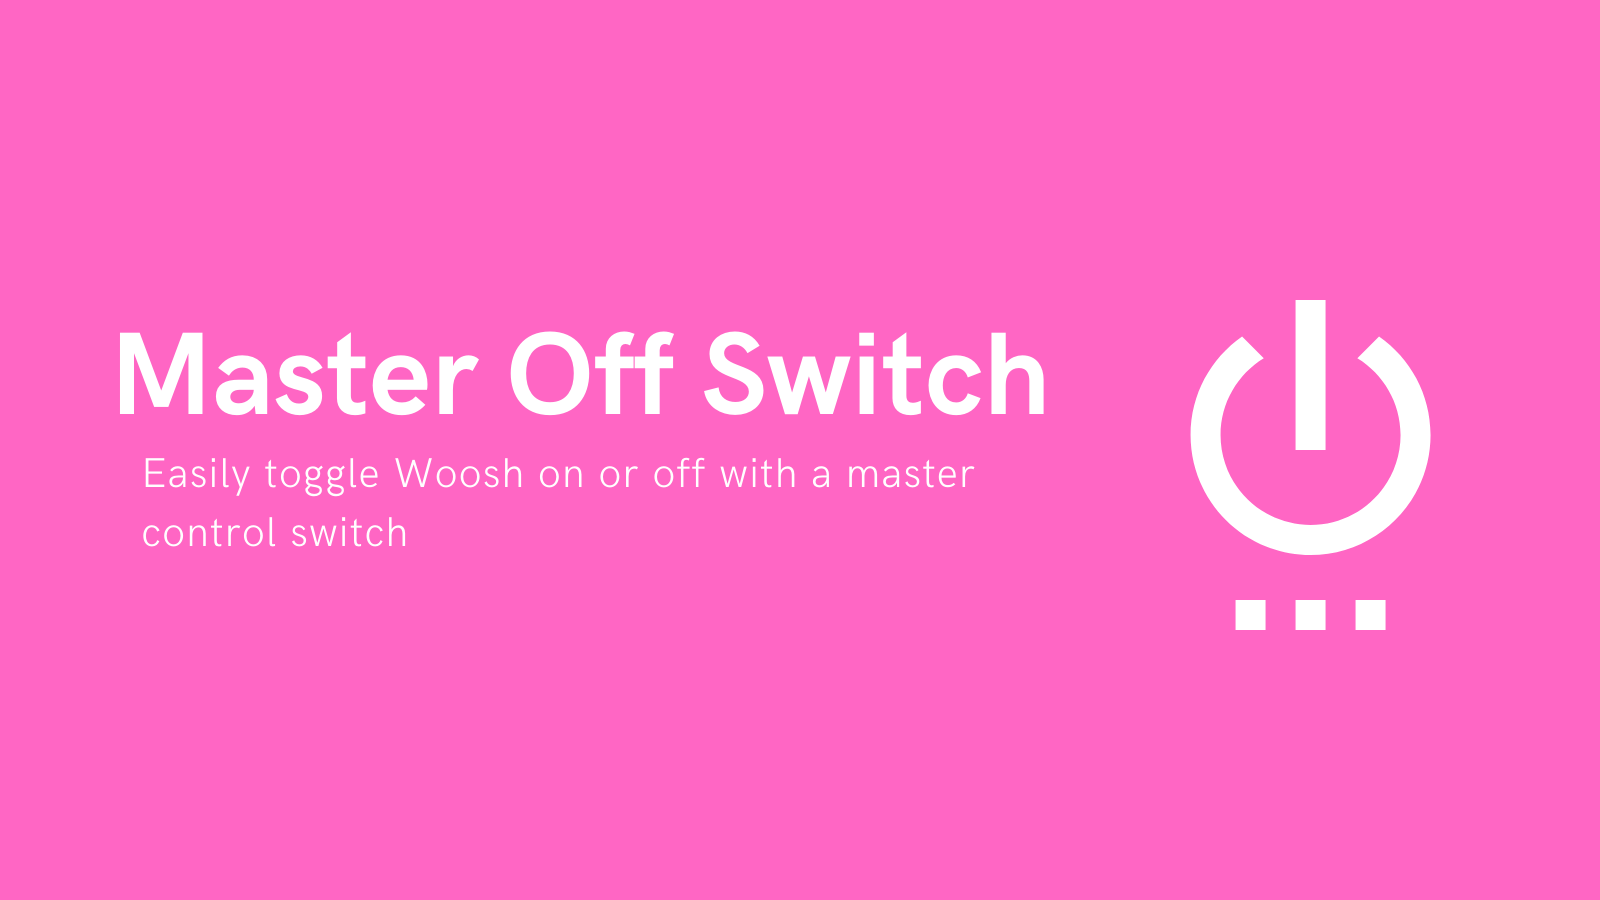 Toggle Woosh on & off easily